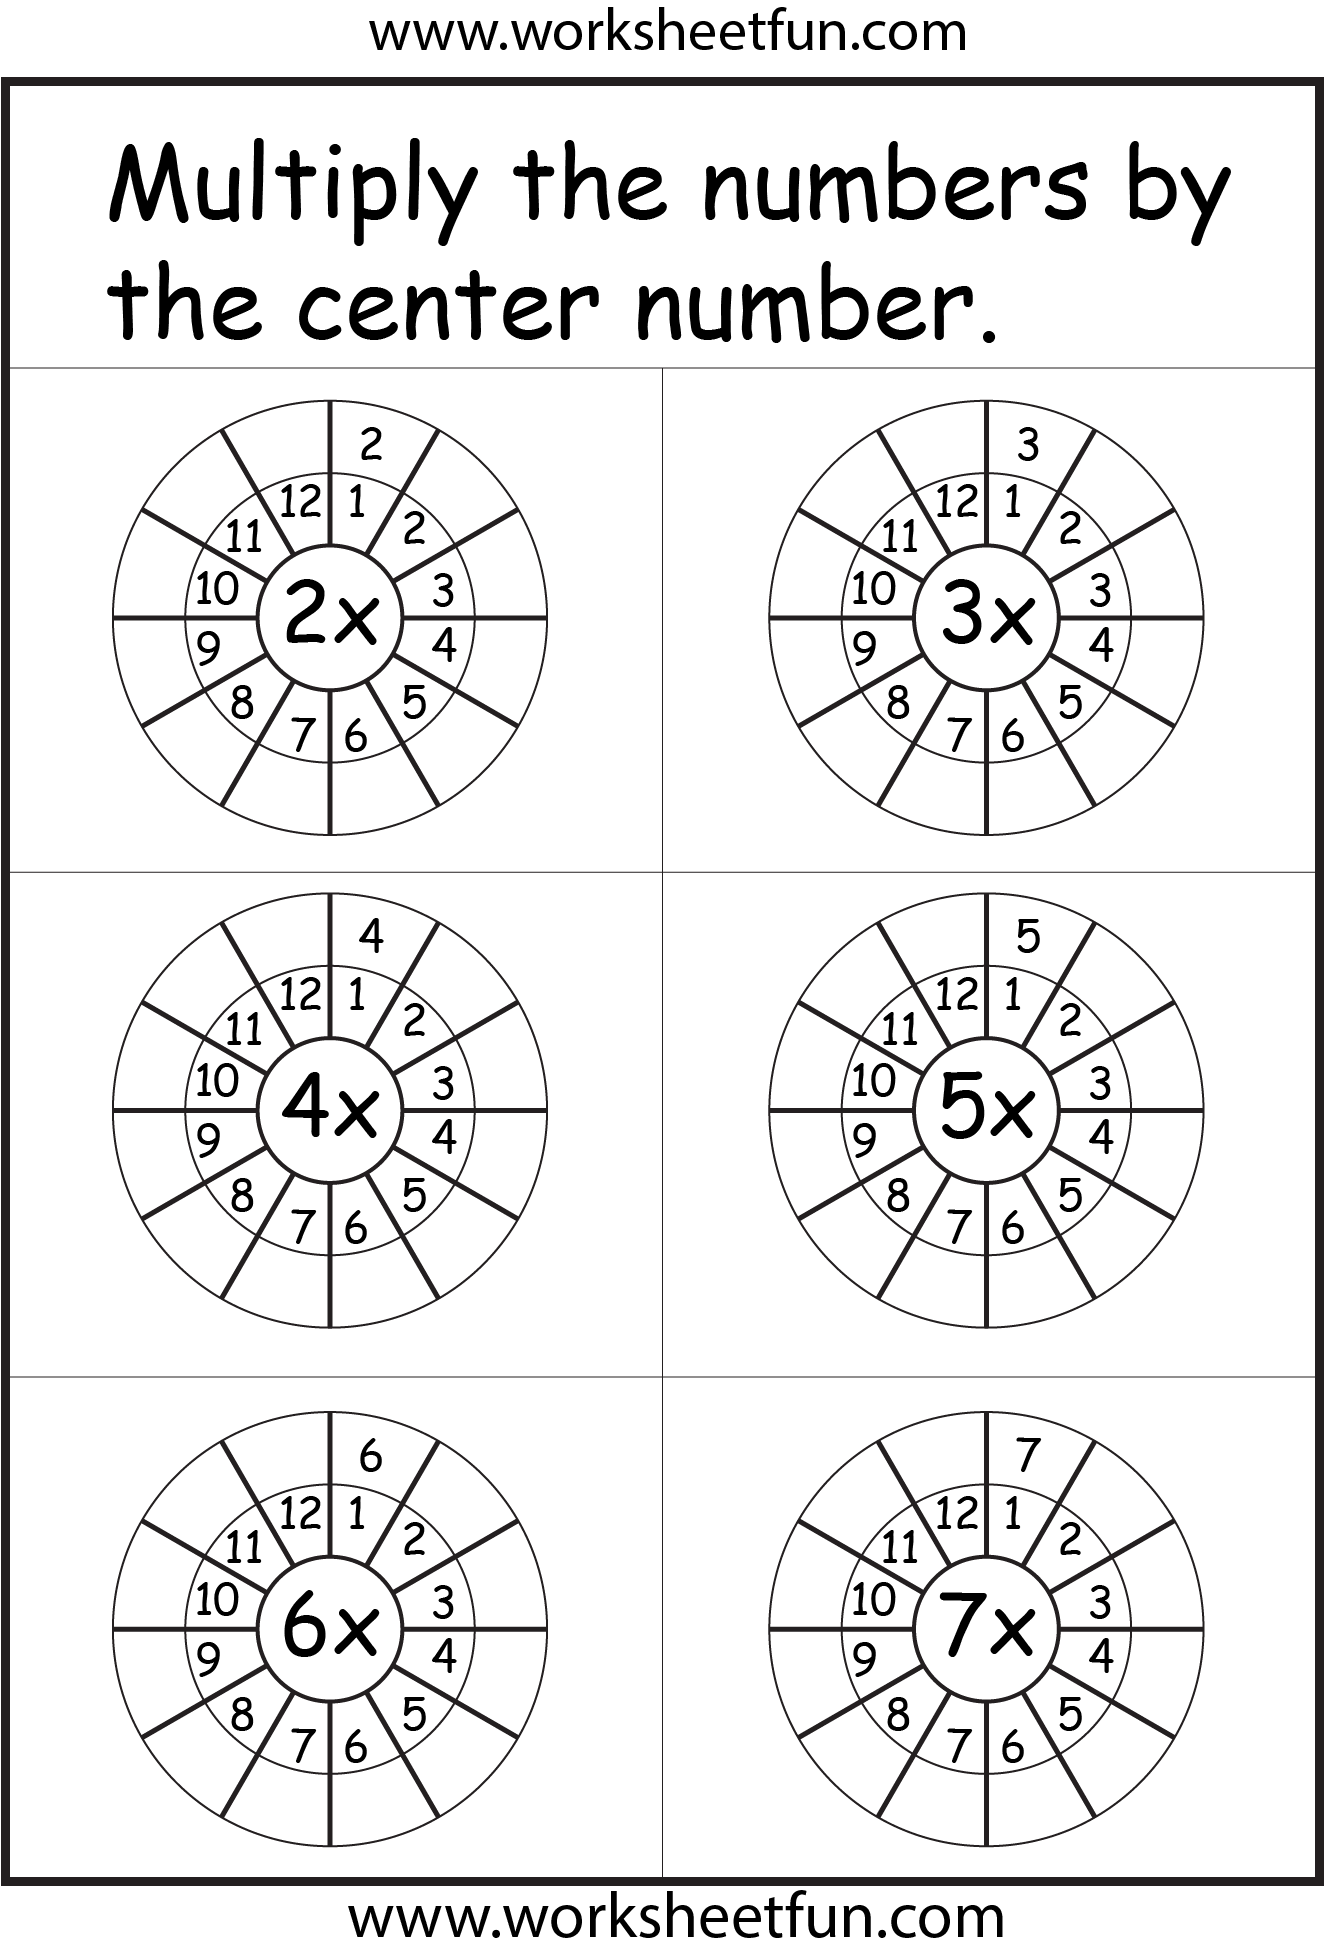 Times Table Worksheet 2 12 Times Tables Two Worksheets Free Printable Worksheets